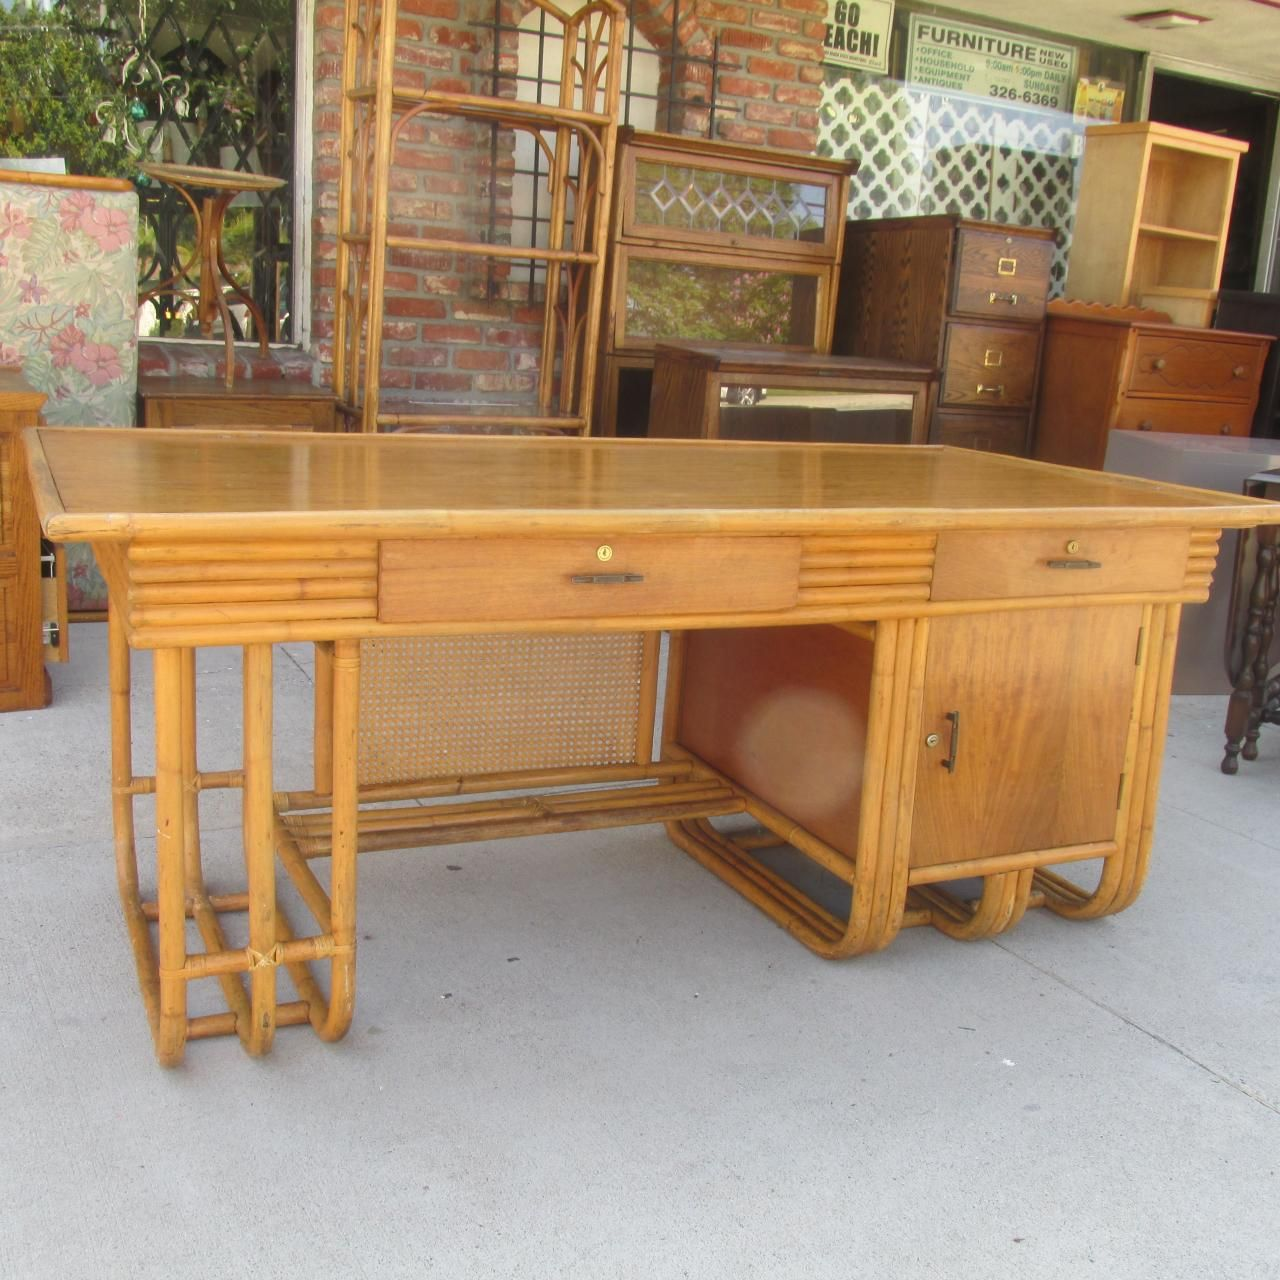 Affordable Retro Furniture: Thrift Shop Rattan Bamboo Desk Vintage Antique